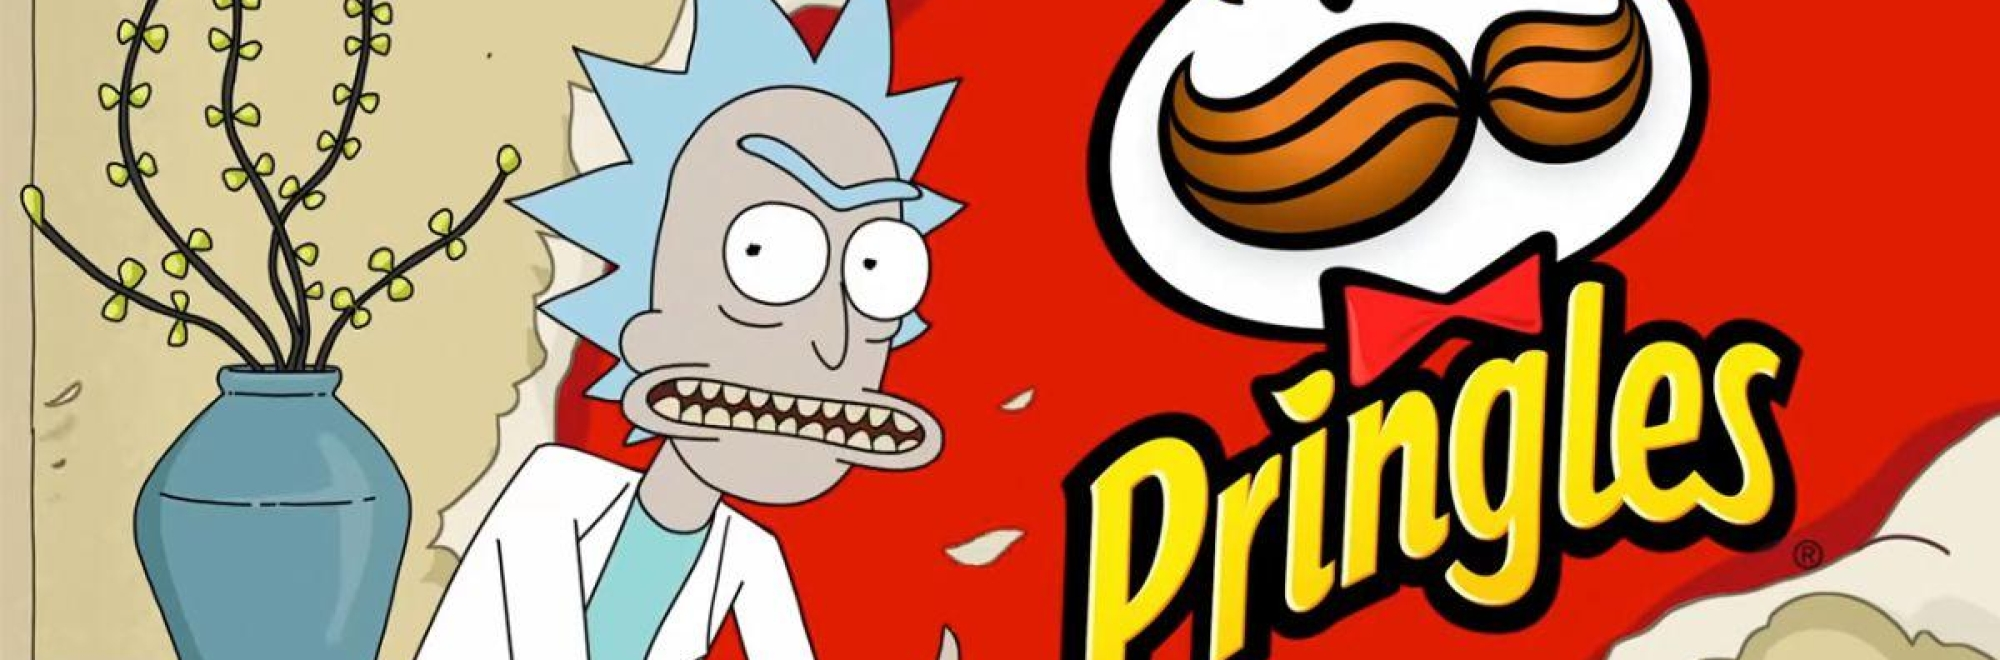 Finally Pringles gets funny with its Rick and Morty Super Bowl ad